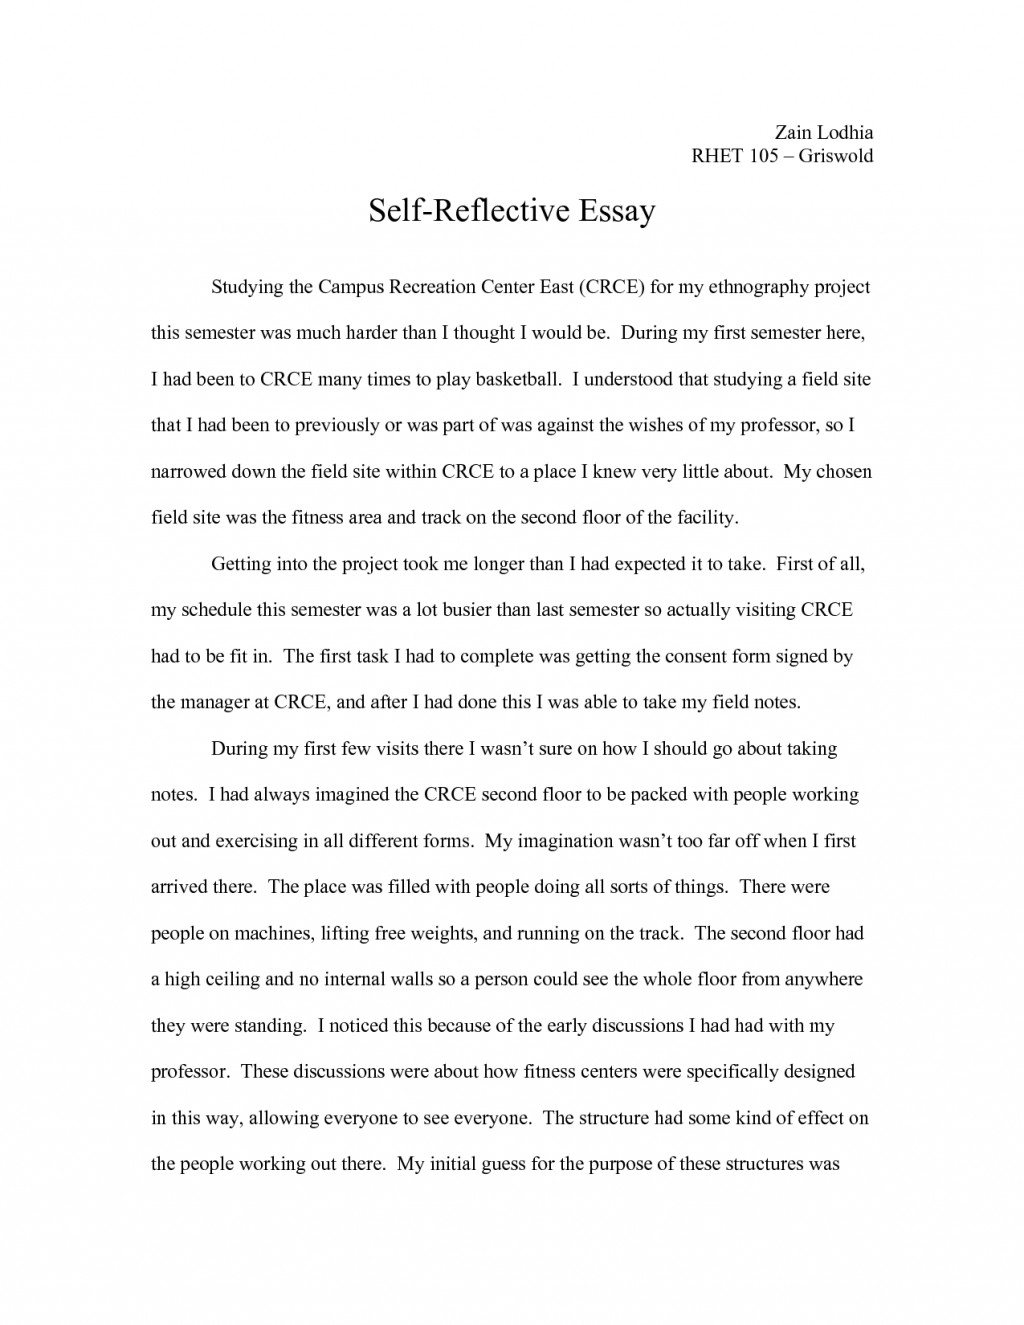 016 Qal0pwnf46 Conclusion Of An Essay Surprising About Racism Argumentative Outline Yourself Large